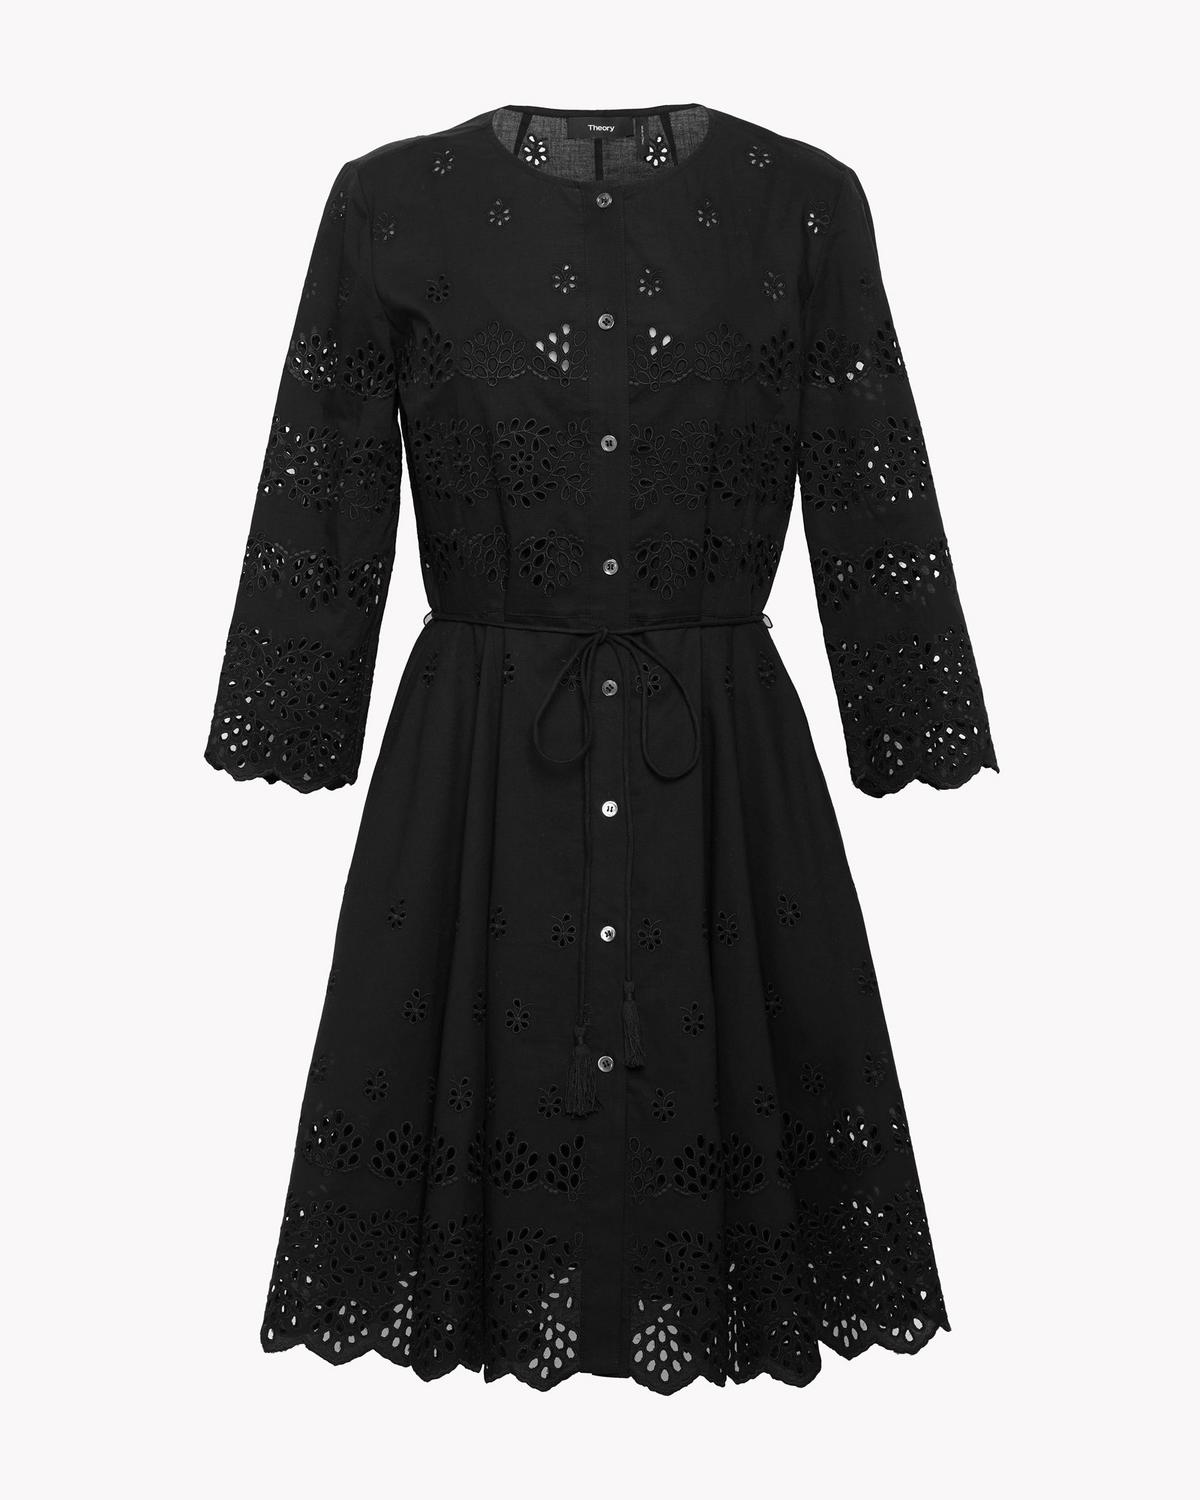 ffd49257f65 Structured Eyelet Shirt Dress 1 - click to view larger image ...